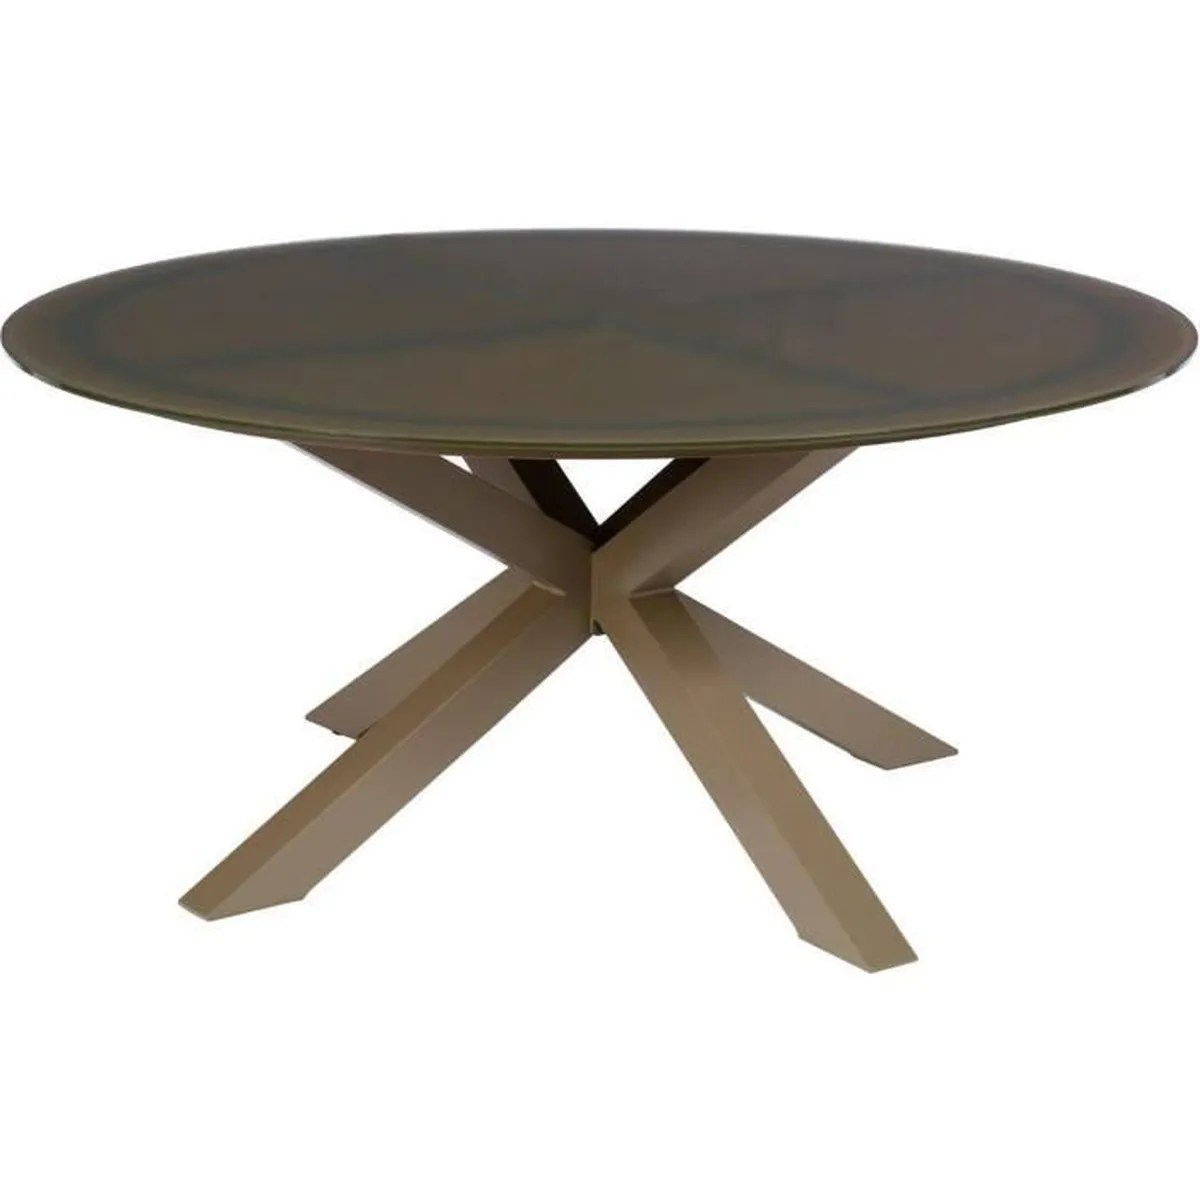 Table De Jardin Ronde Jardiland | Table Ronde De Jardin Table D ...